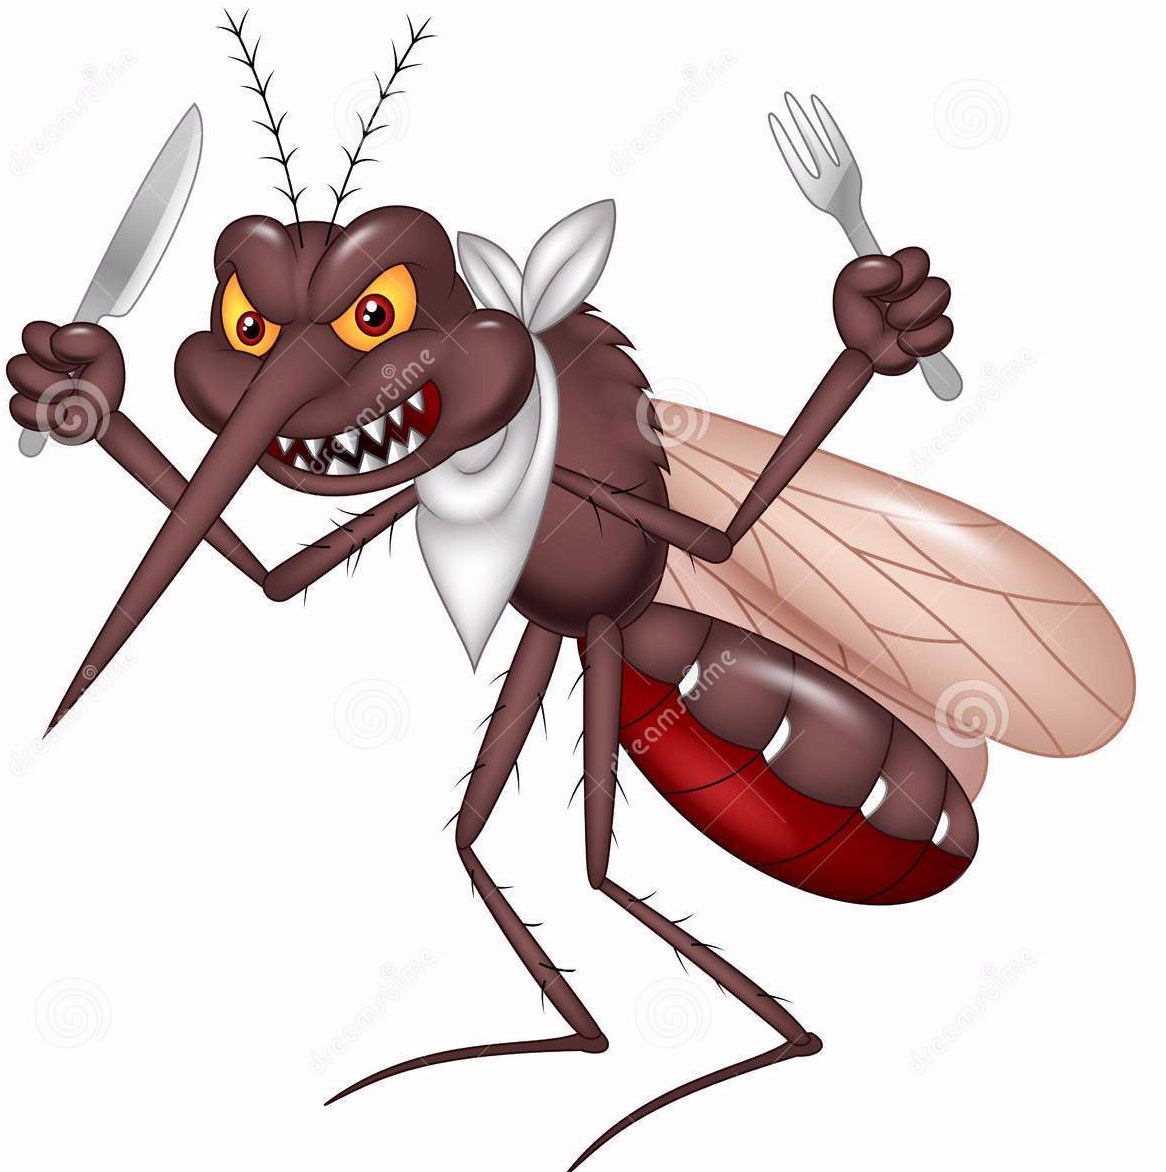 cartoon-mosquito-ready-eat-illustration-90768434